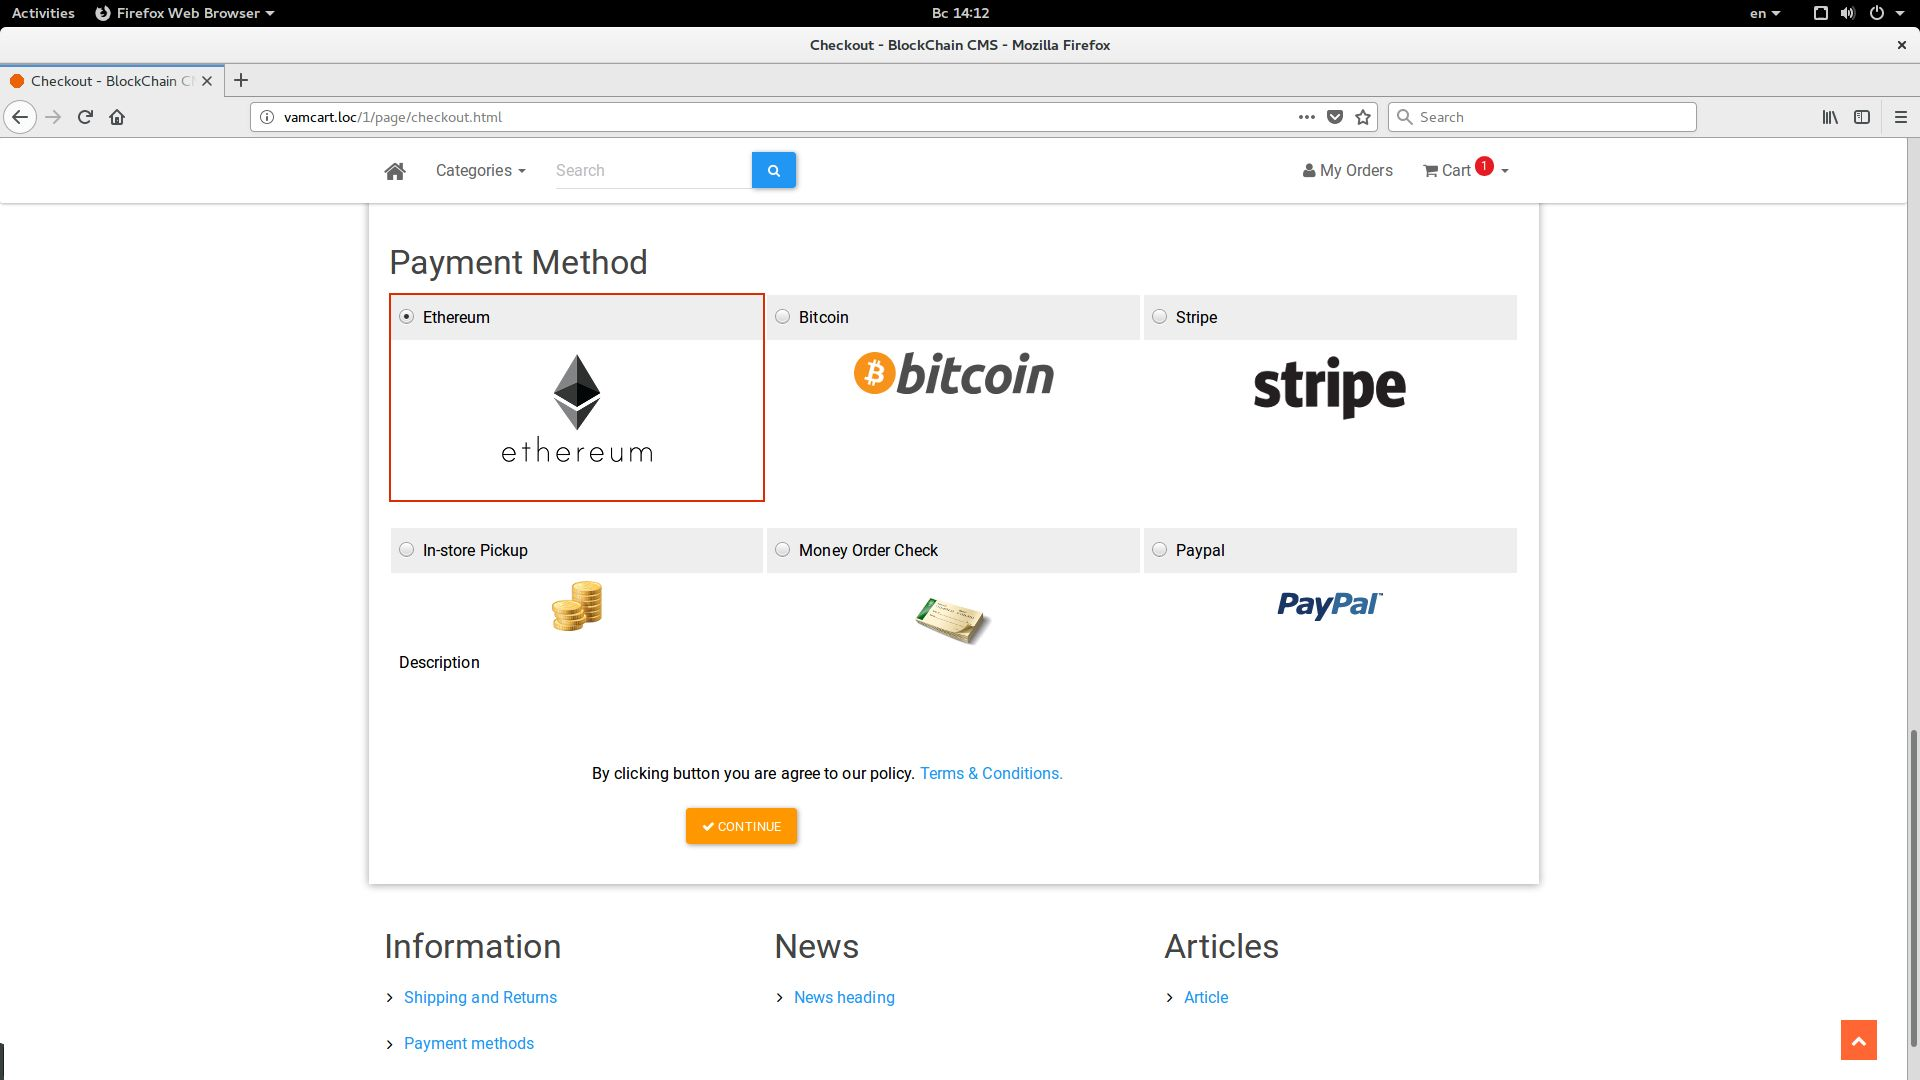 BlockChain CMS Shopping Cart Screenshot 4